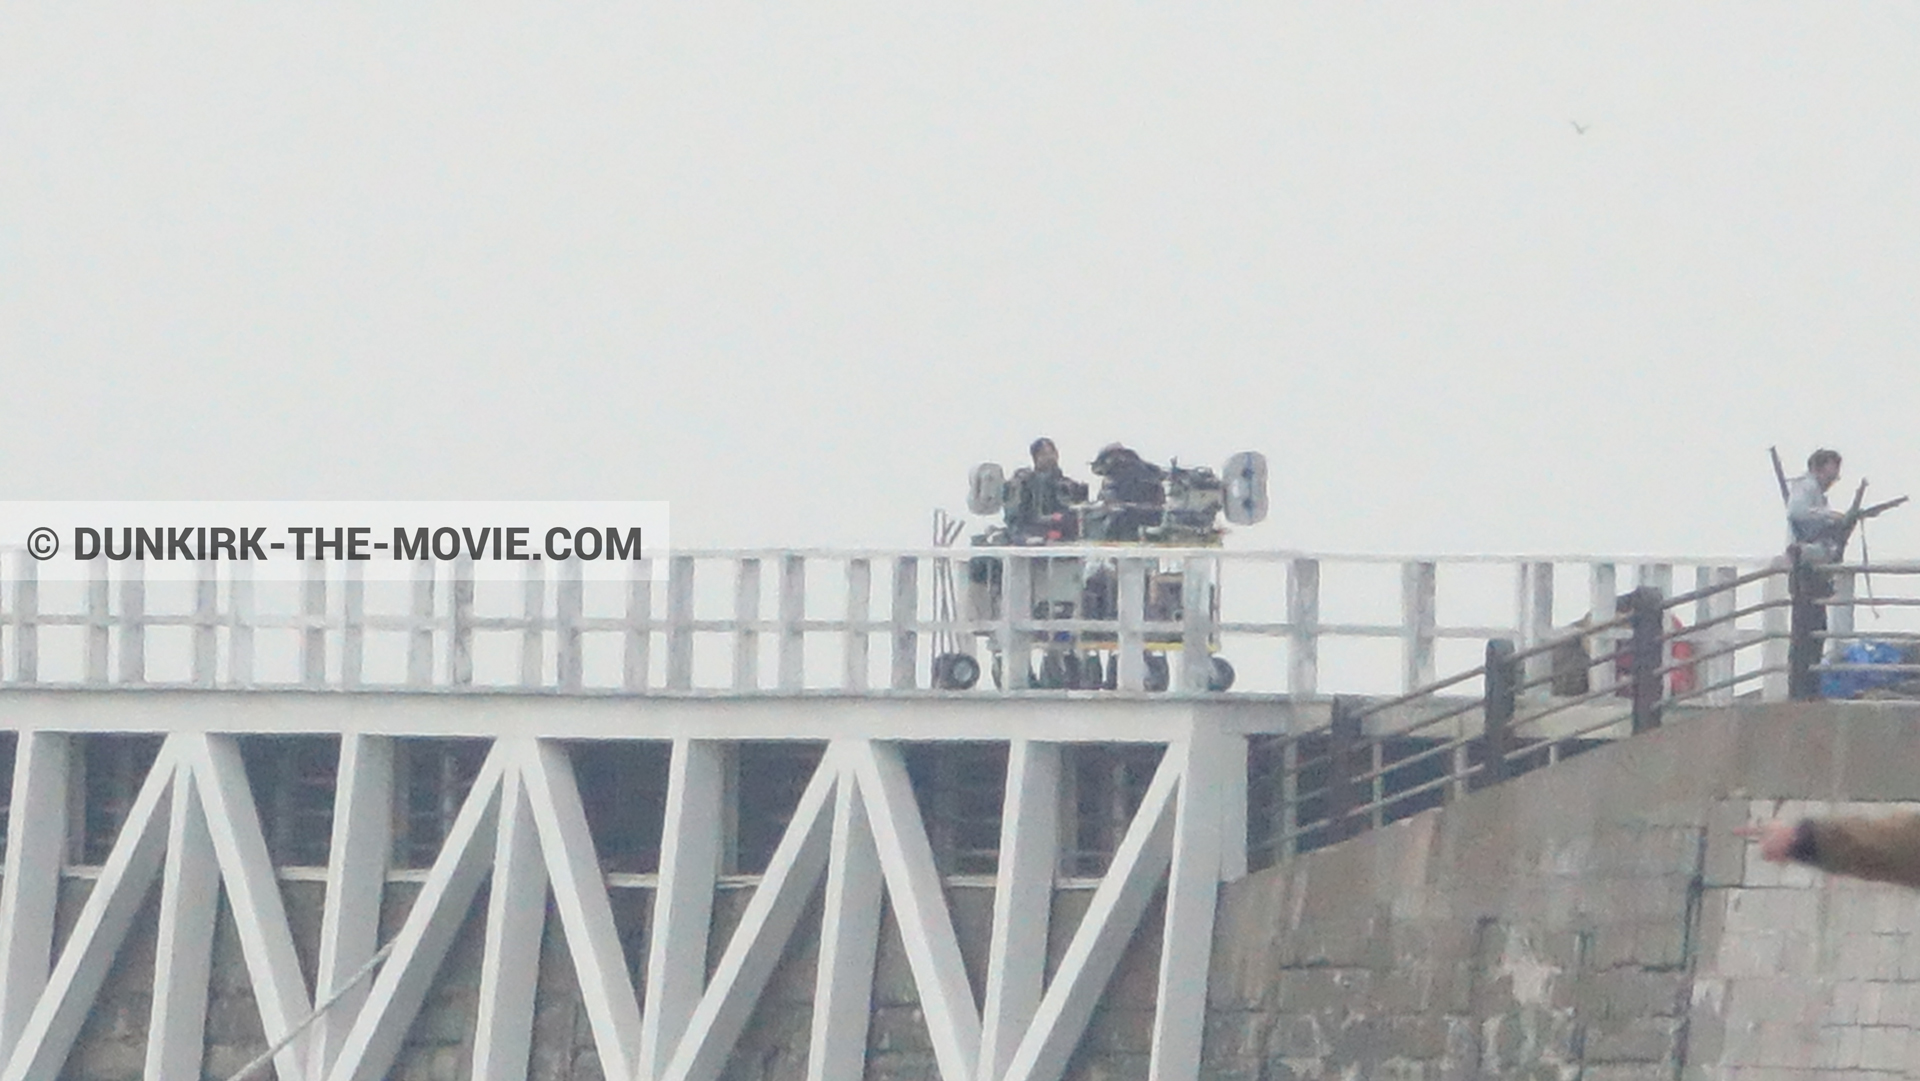 Picture with IMAX camera, grey sky, EST pier, technical team,  from behind the scene of the Dunkirk movie by Nolan